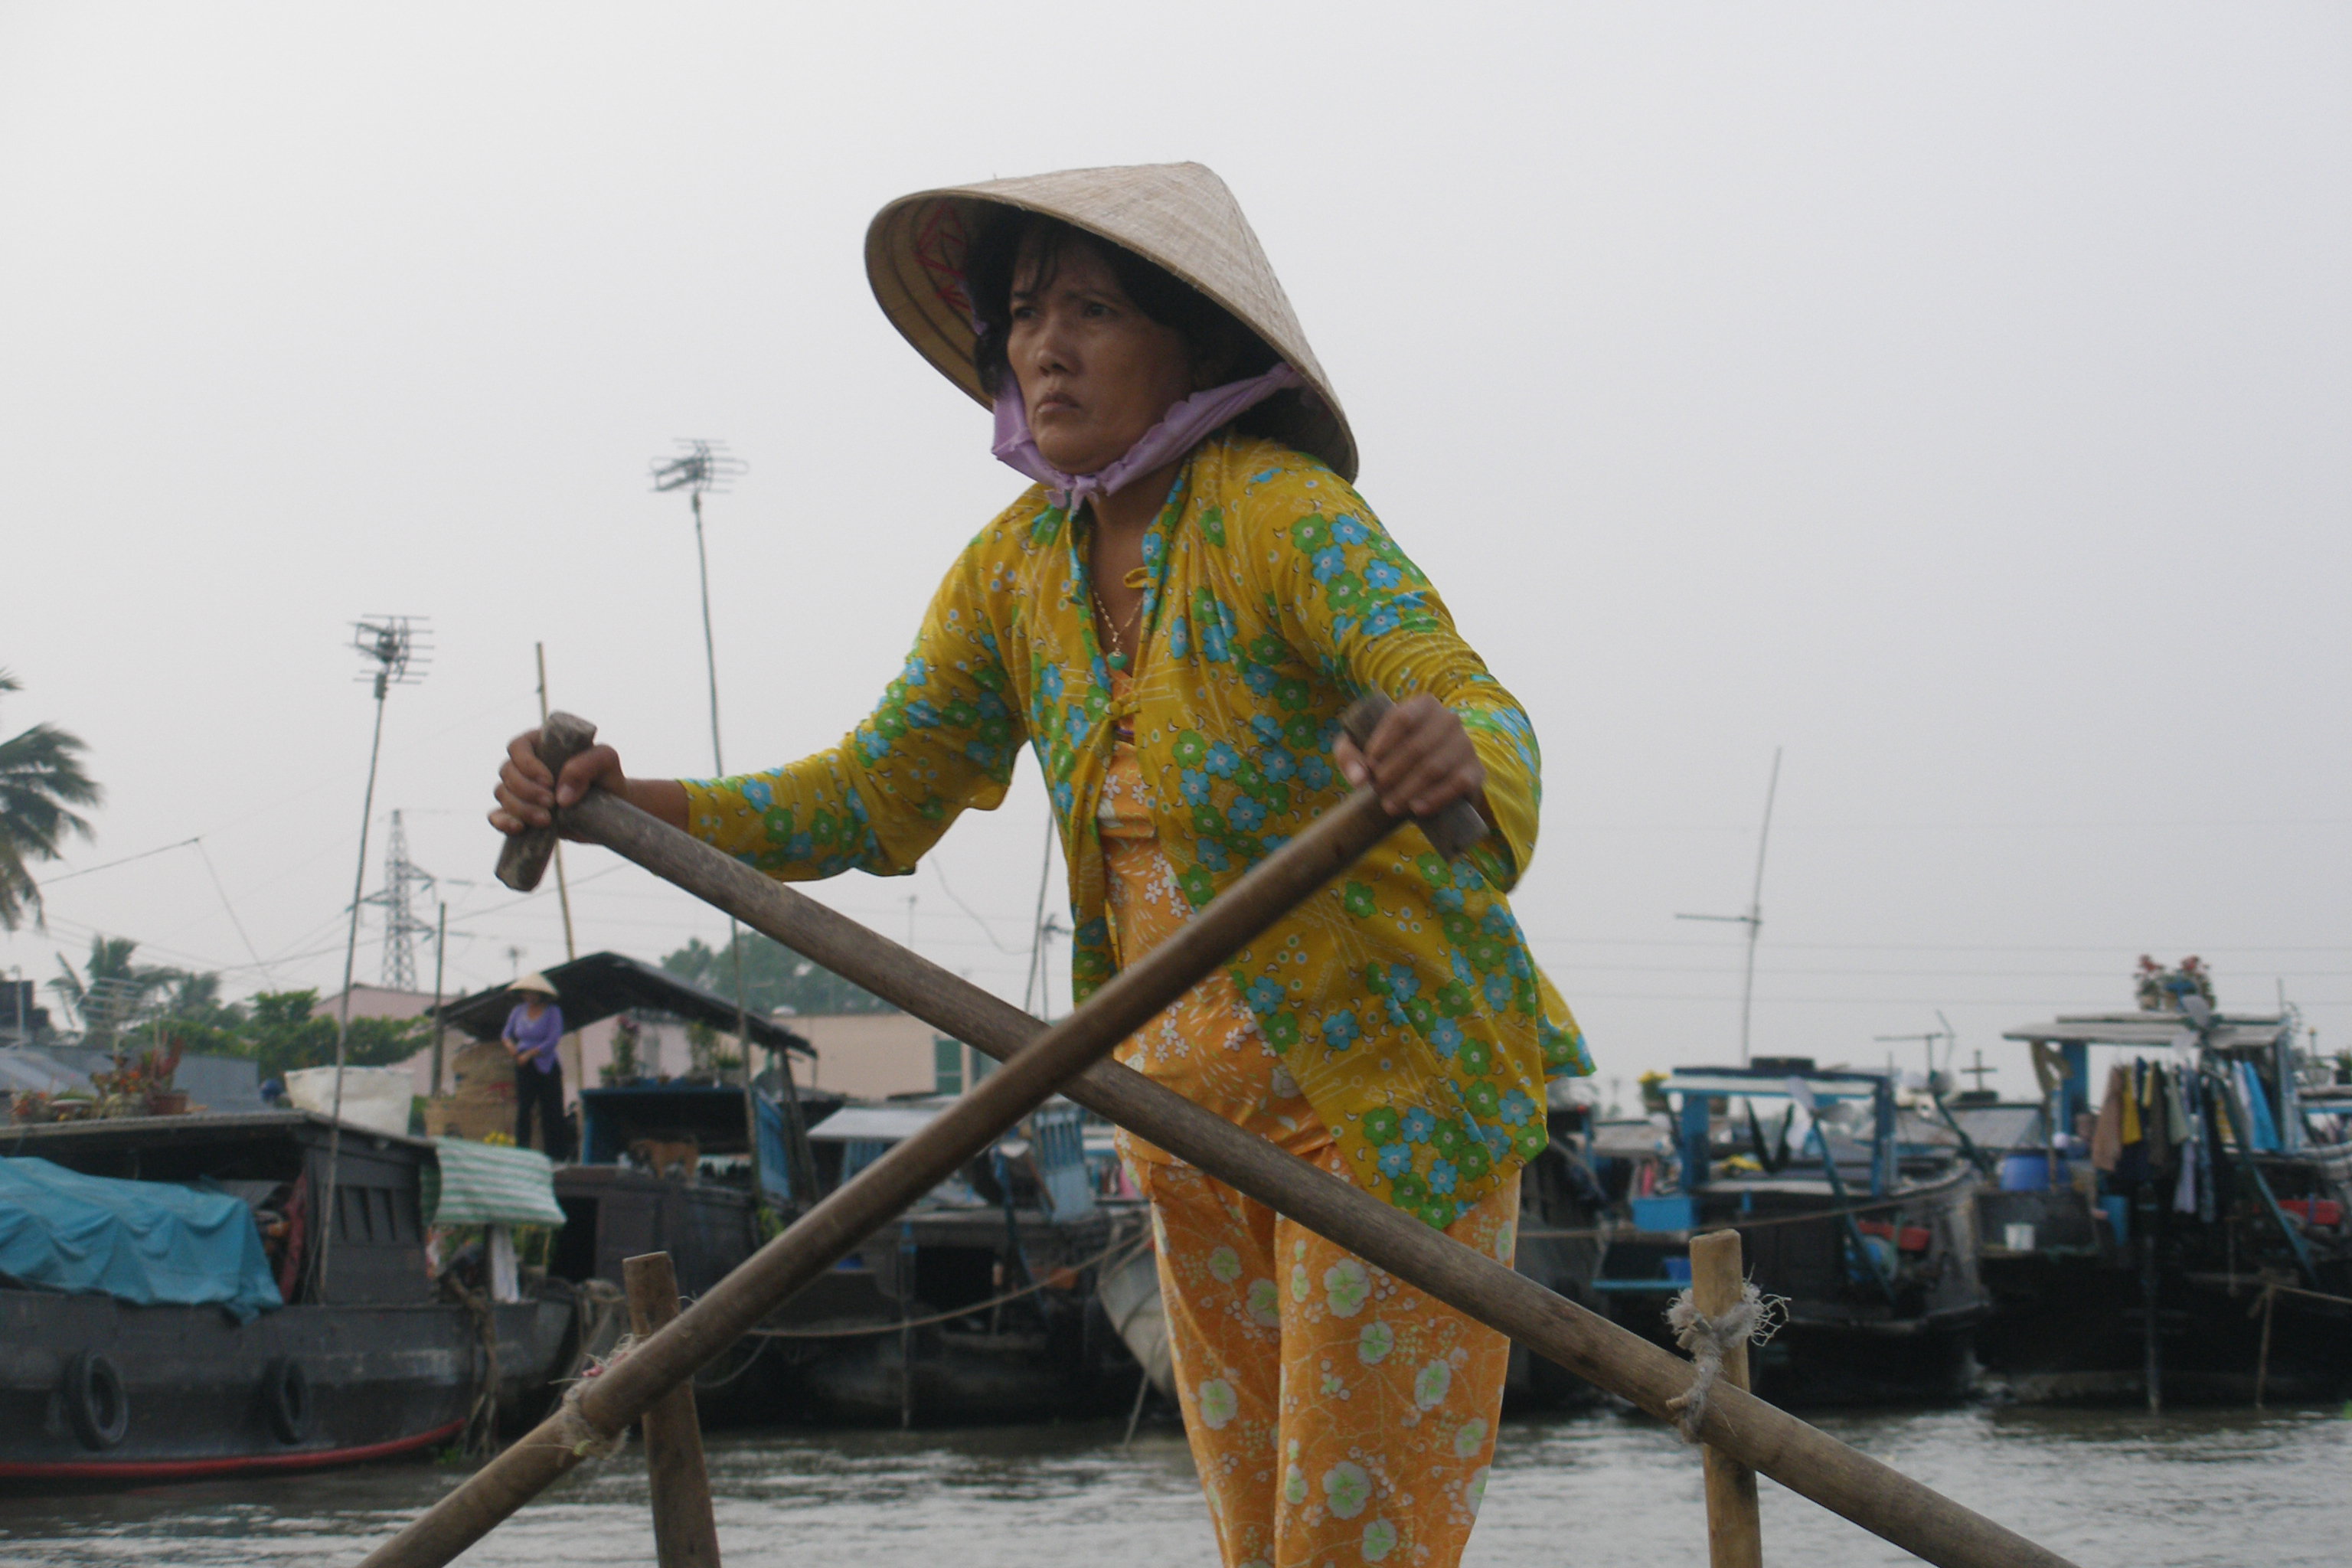 File:Can Tho, Vietnam, Floating Market, Rawing 3.jpg - Wikimedia Commons